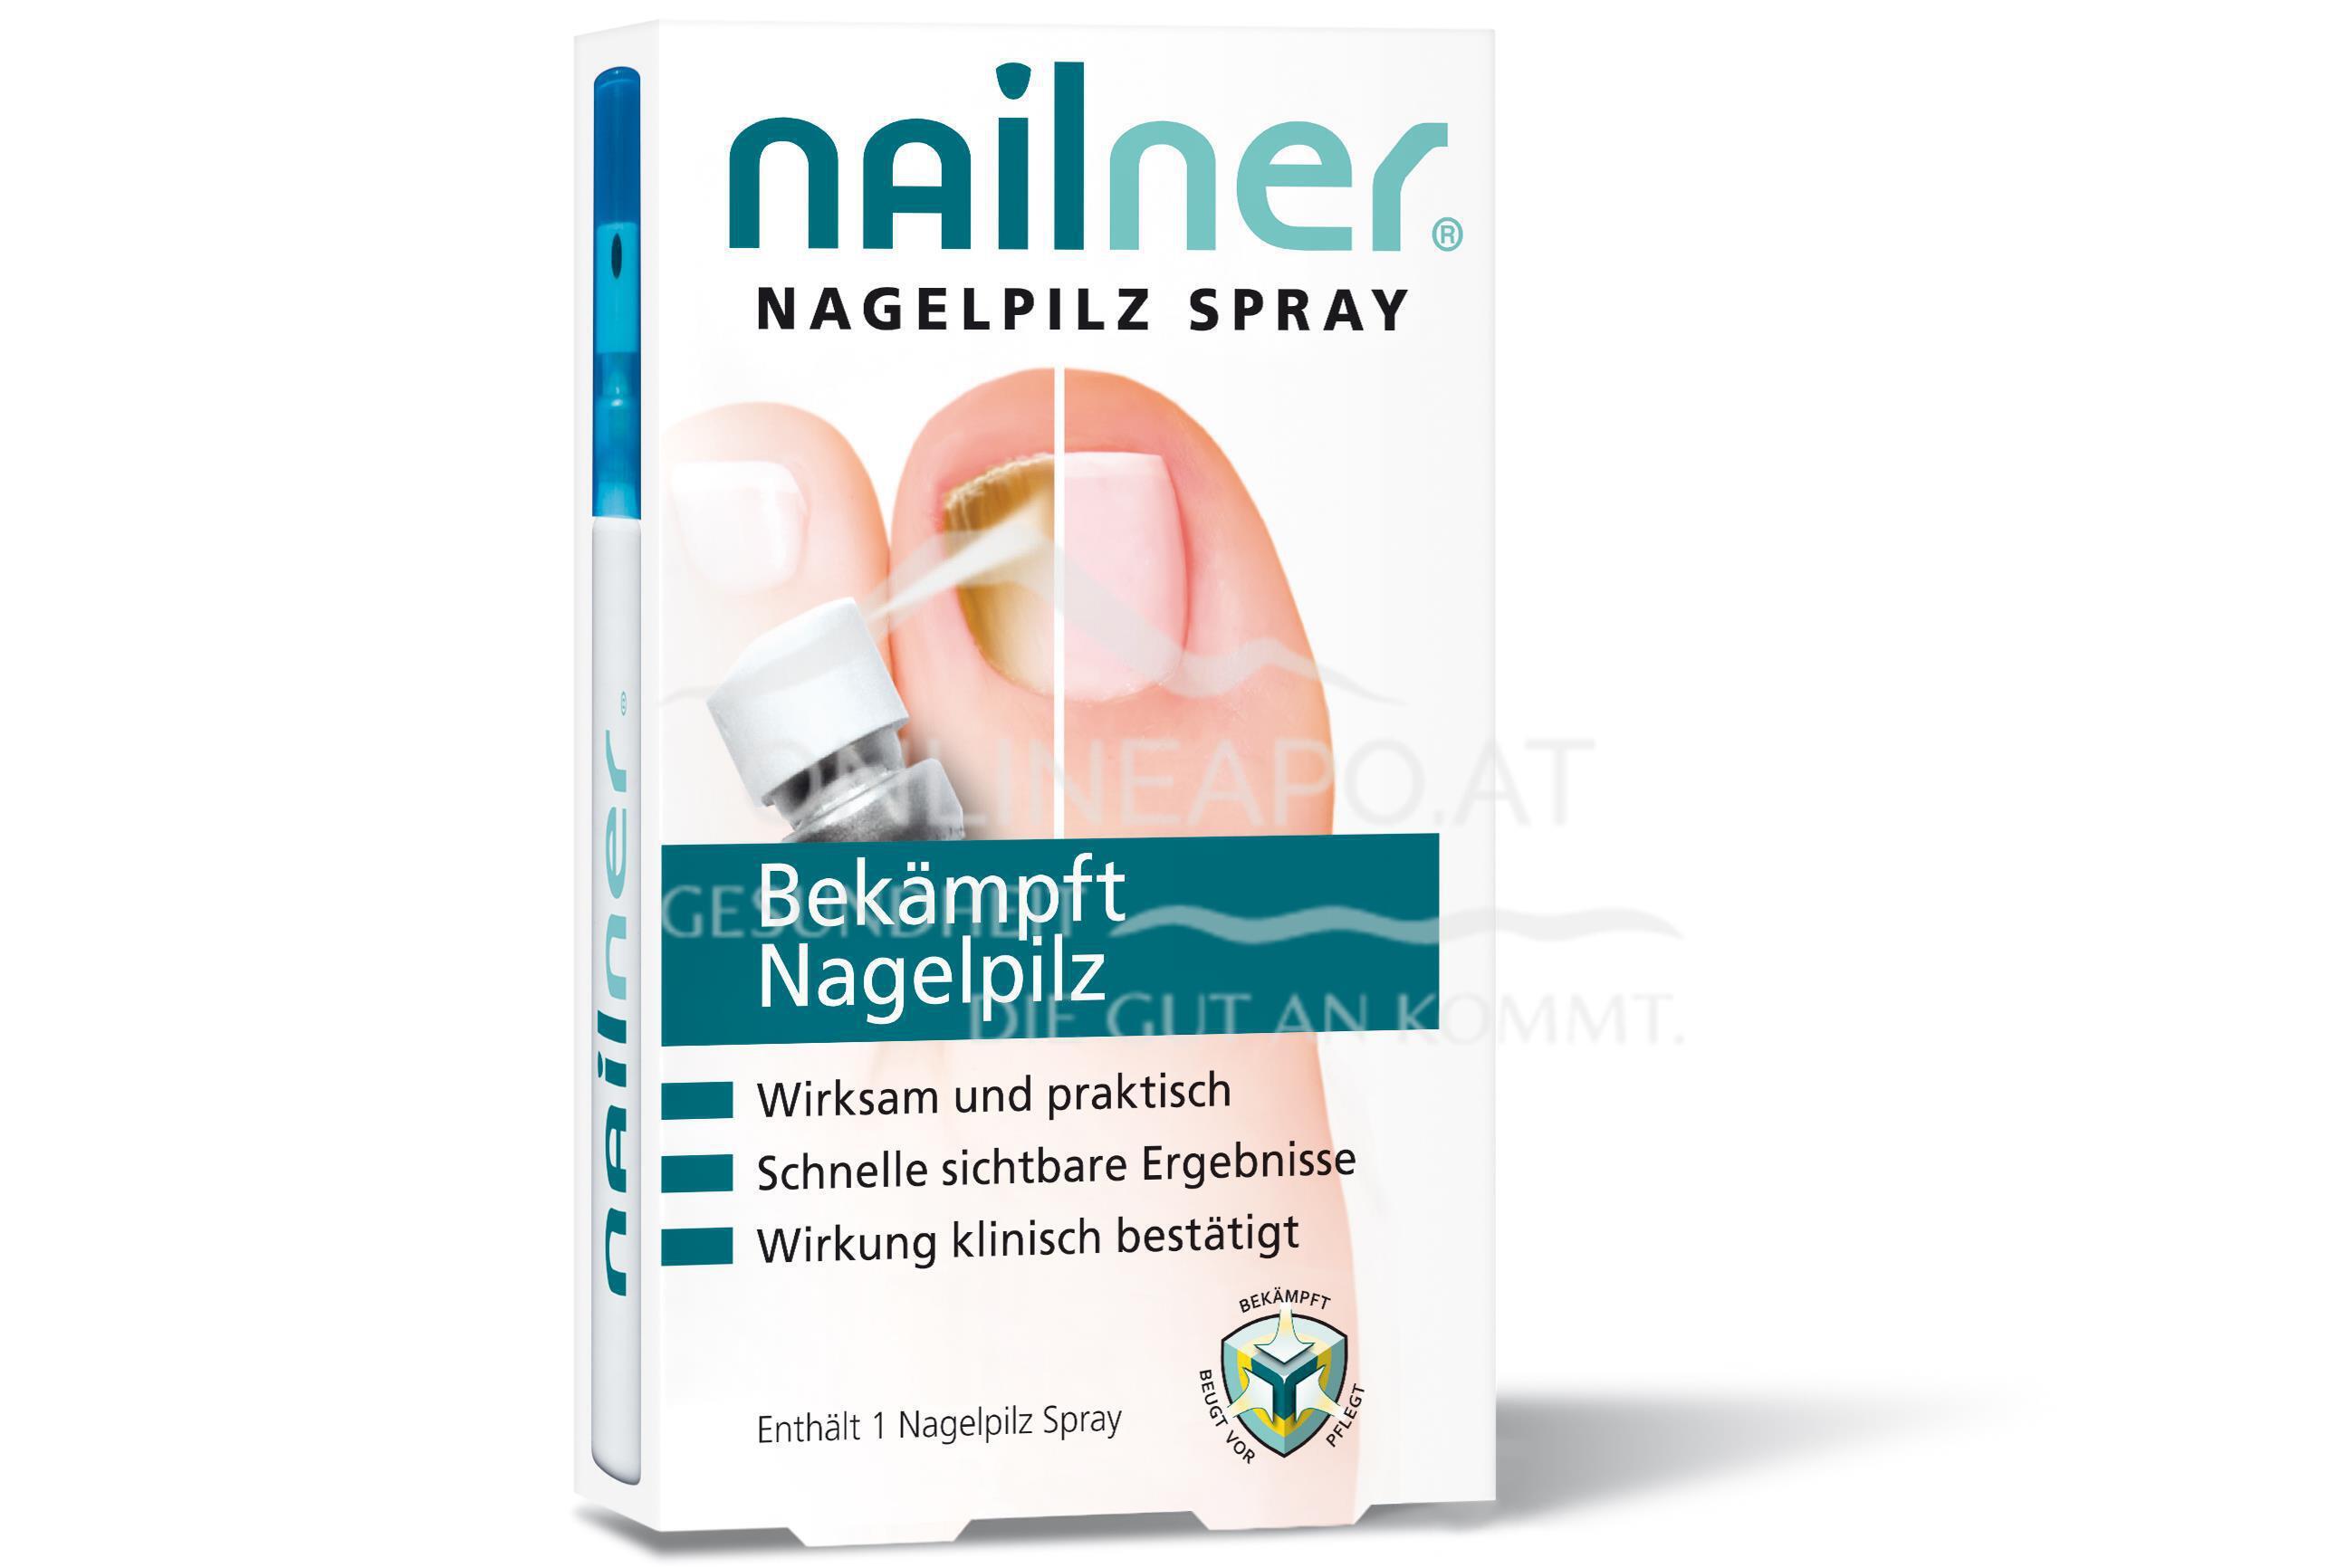 Nailner Nagelpilz Spray